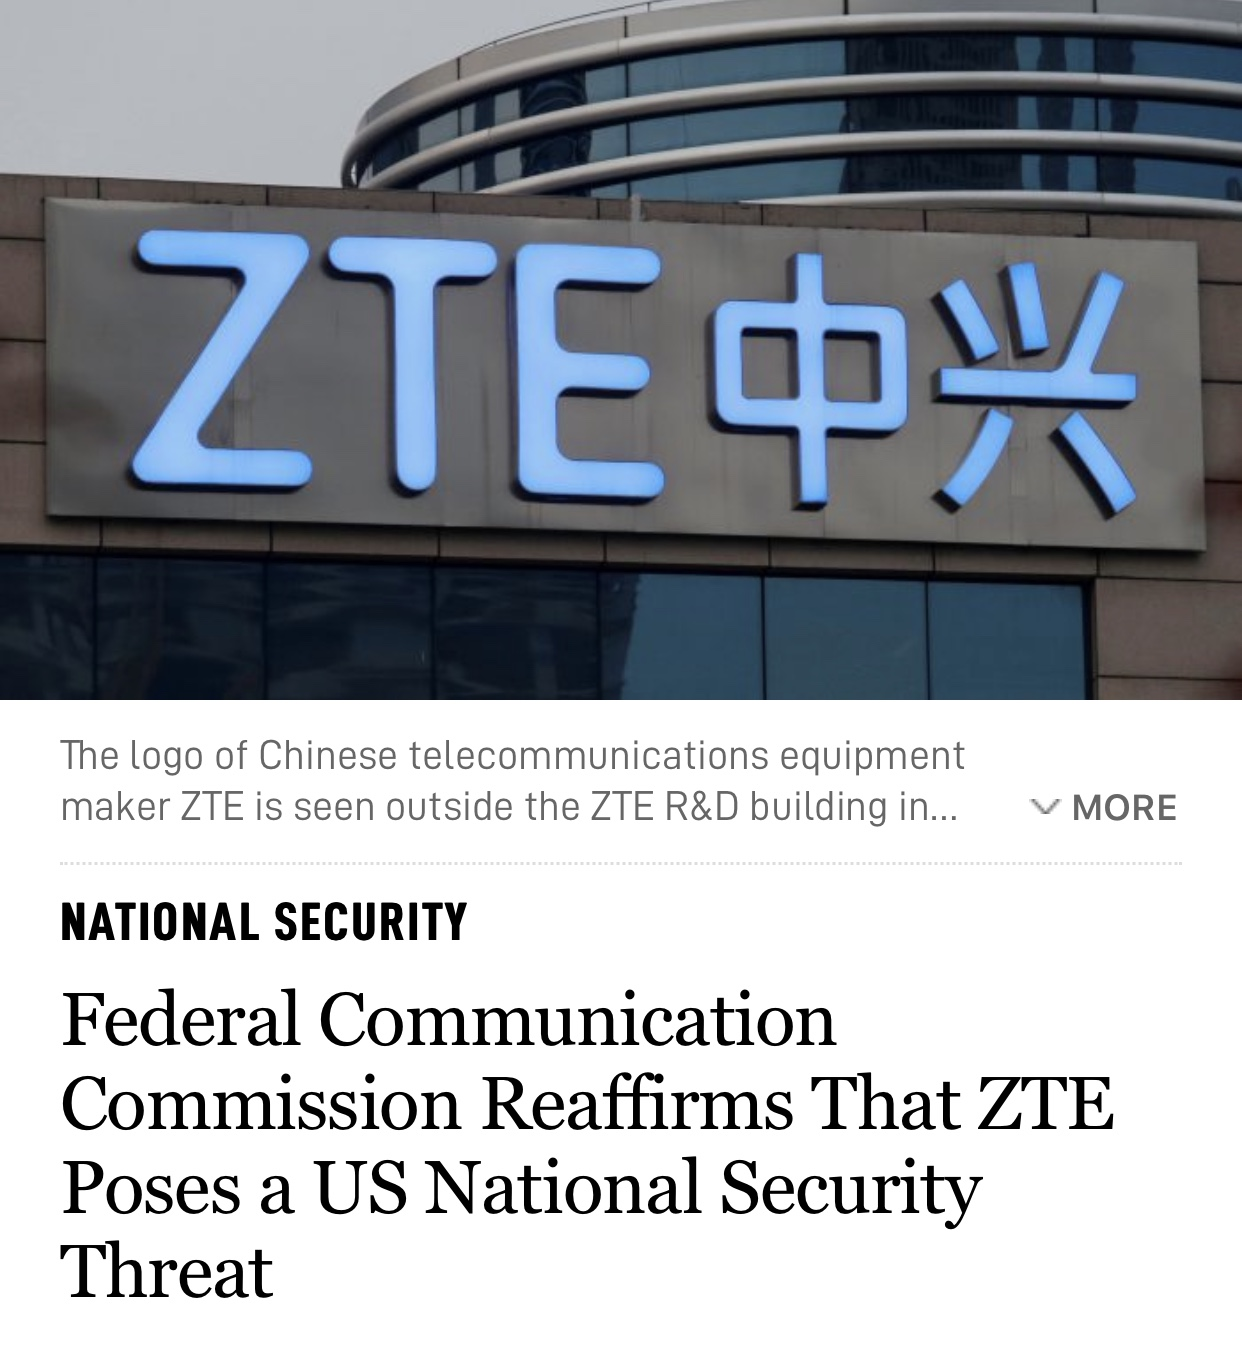 NATIONAL SECURITY Federal Communication Commission Reaffirms That ZTE Poses a US National Security Threat